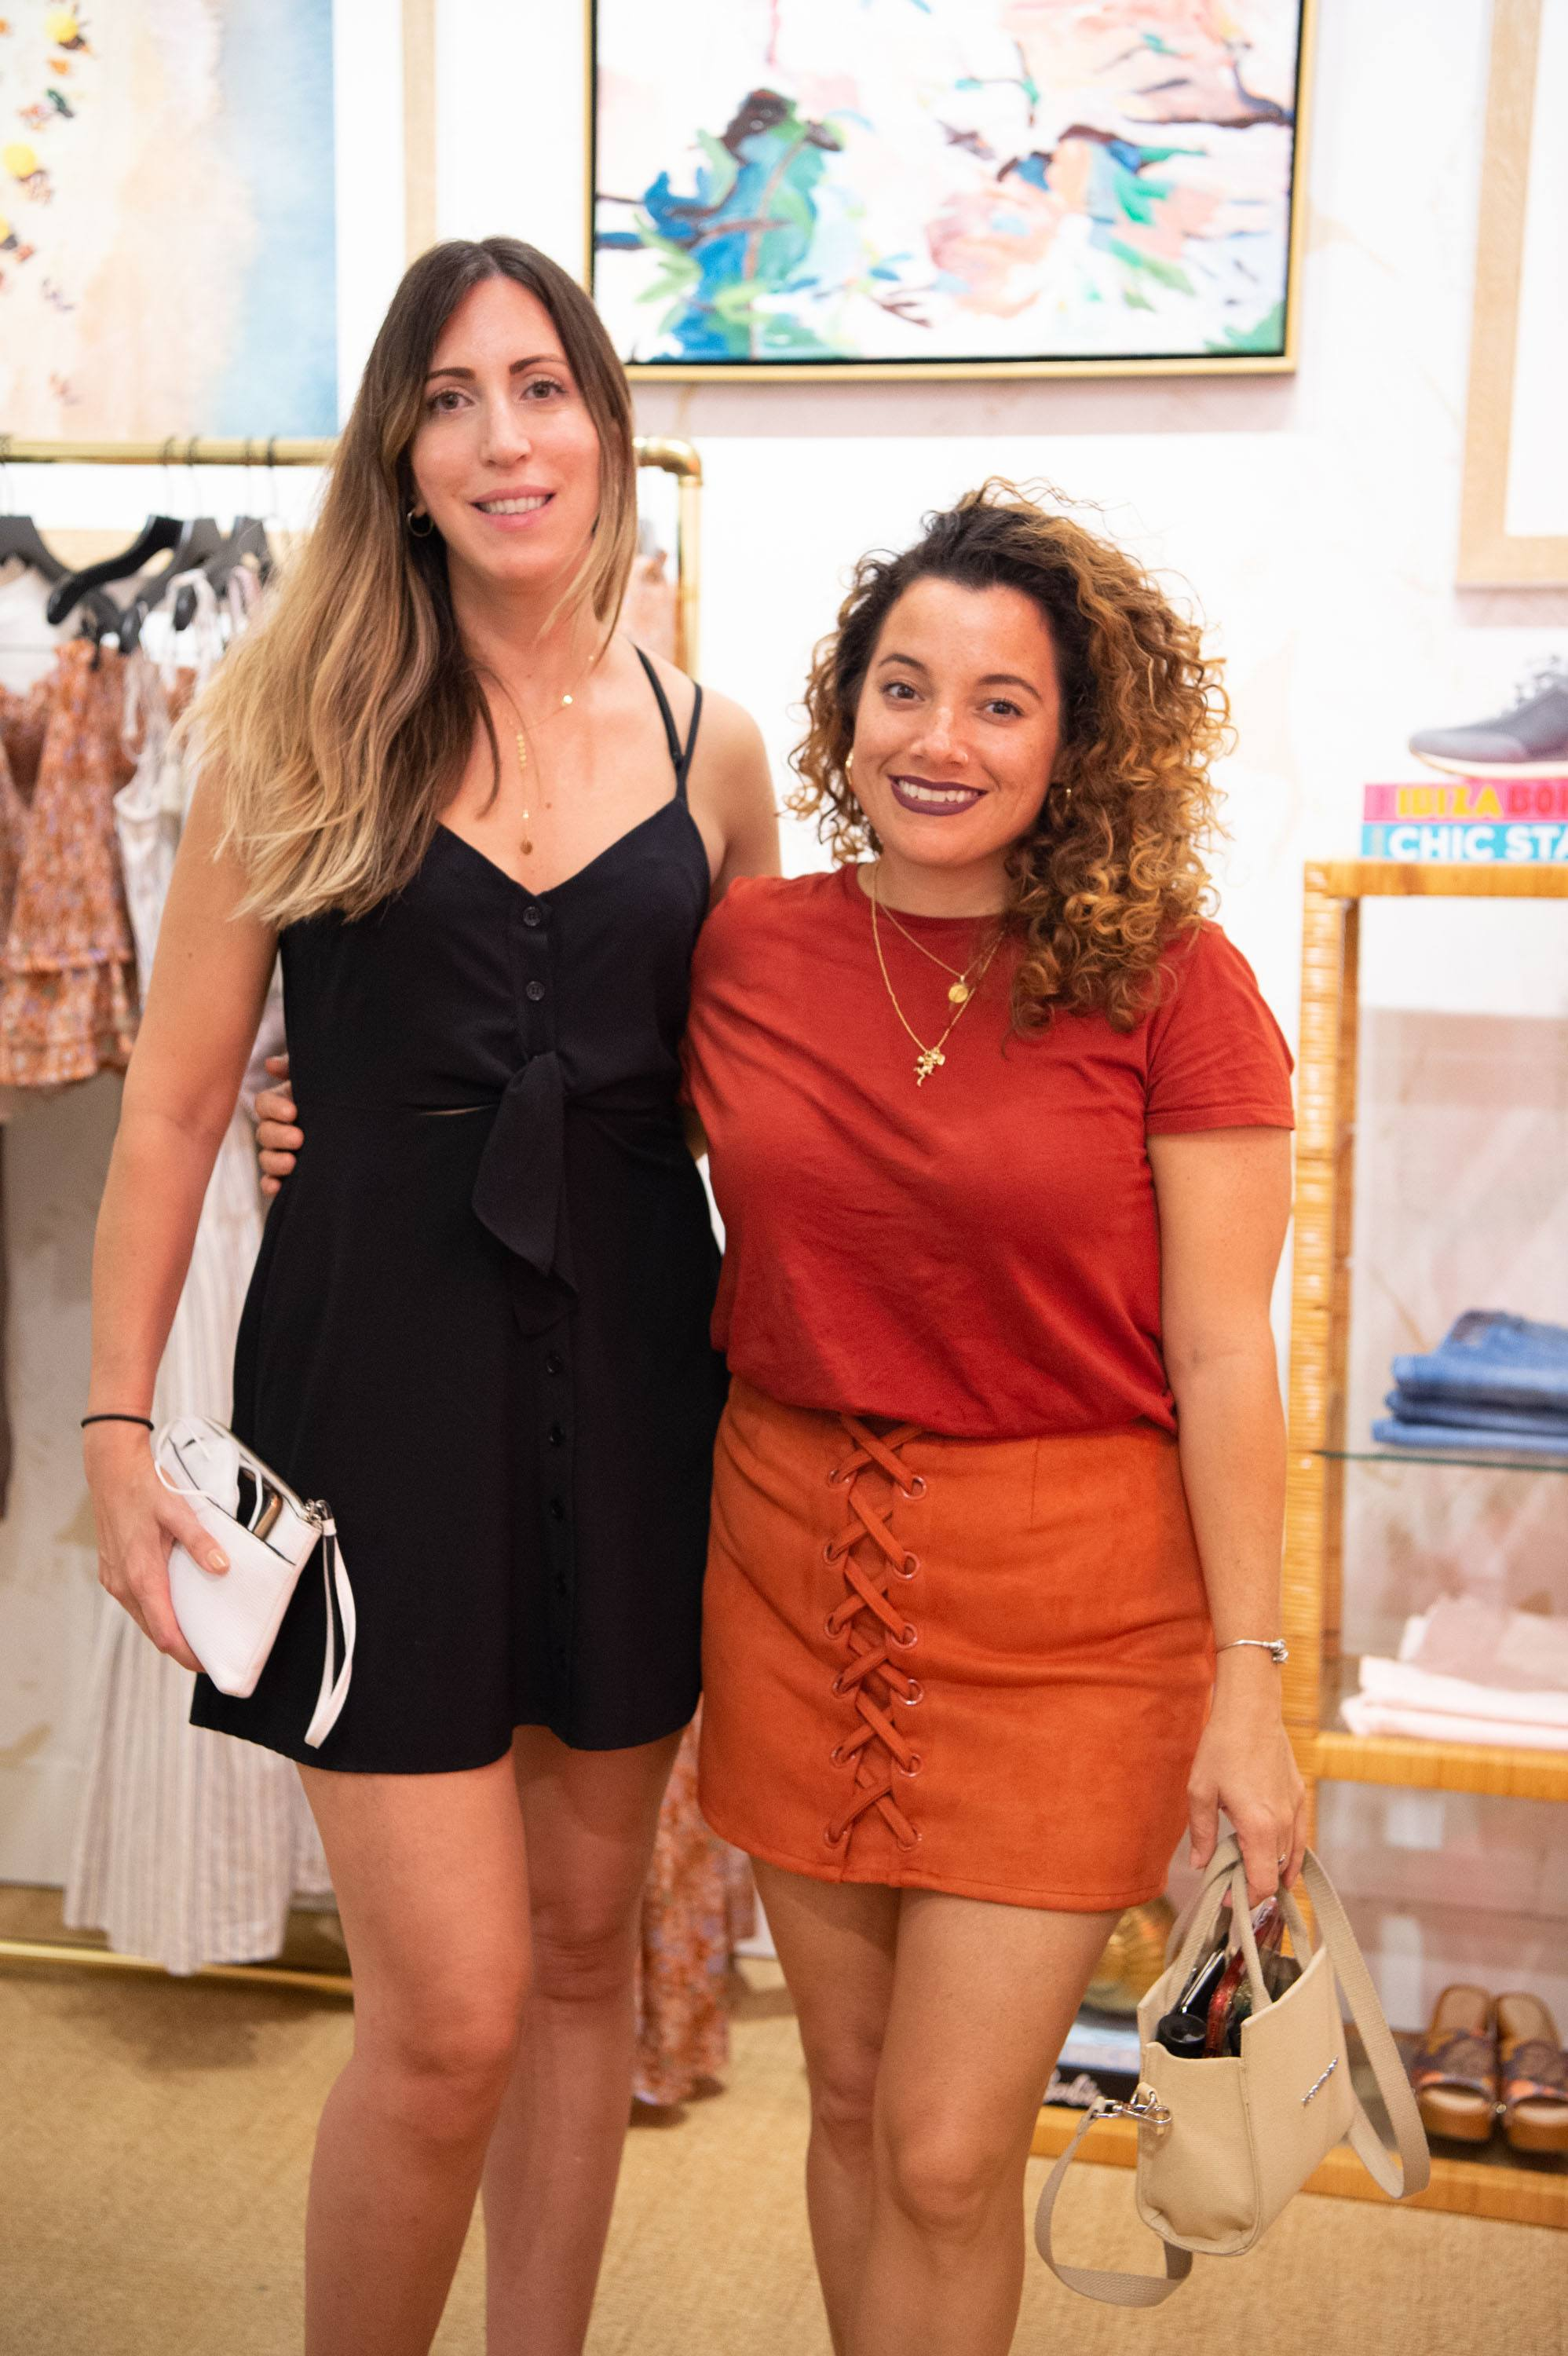 Two women smile and pose for a photo in the Veronica Beard store